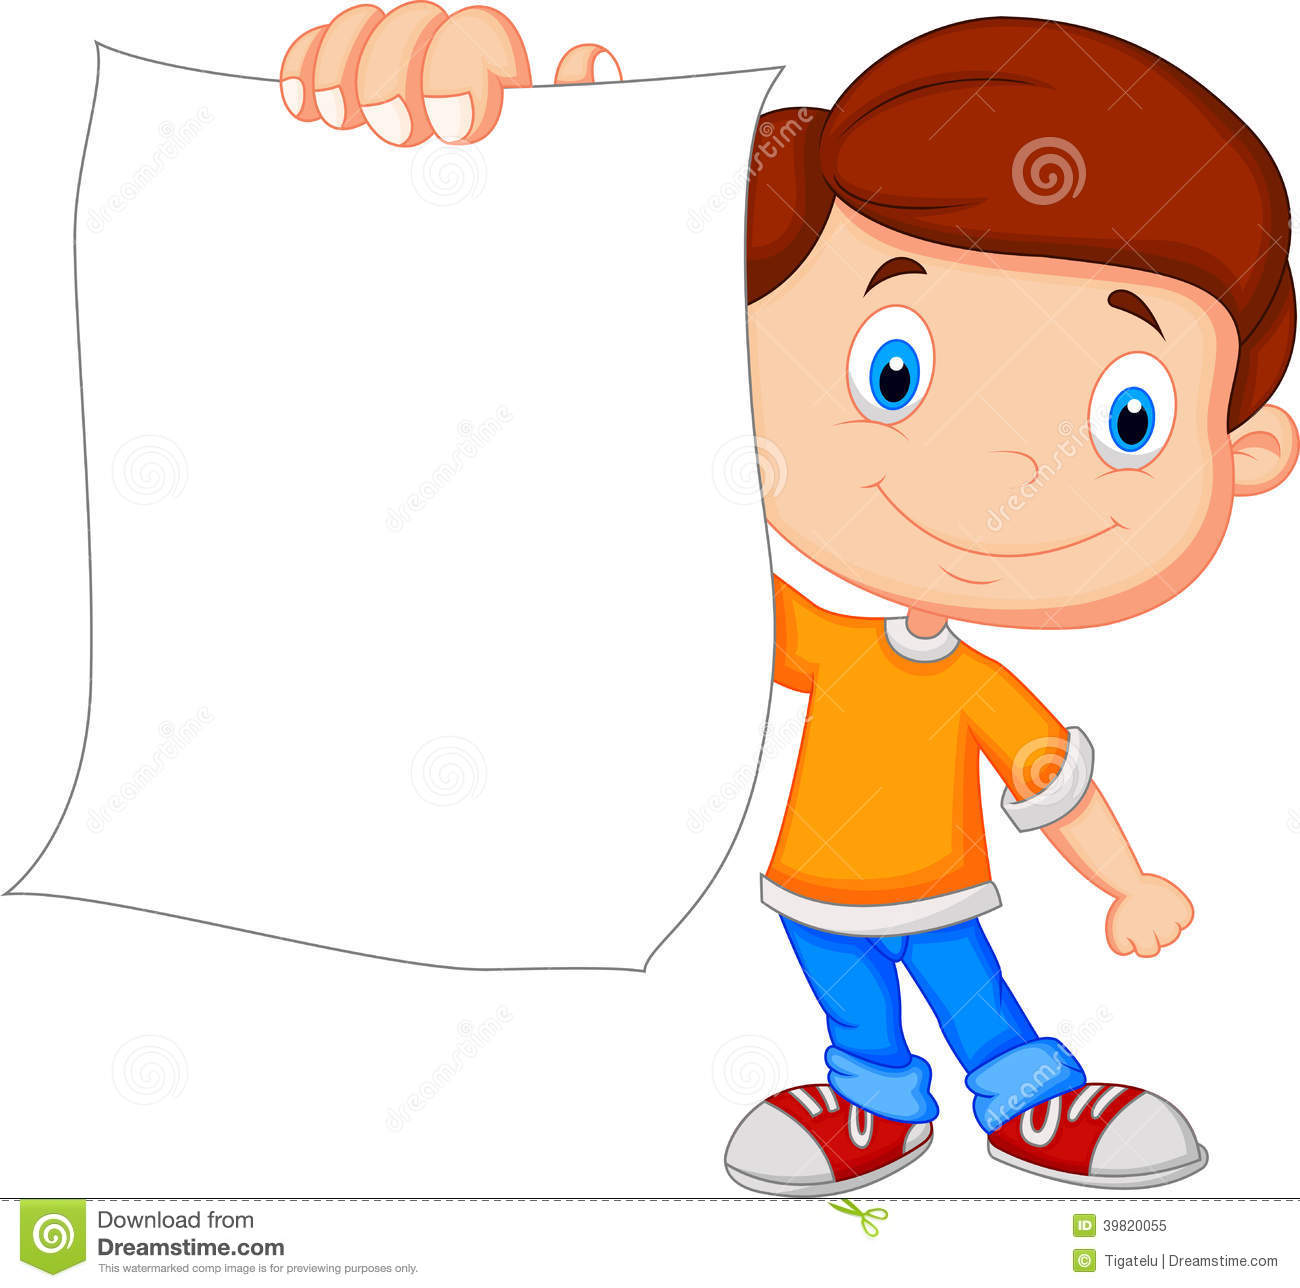 Cartoon Boy Holding Blank Paper Stock Vector - Image: 39820055